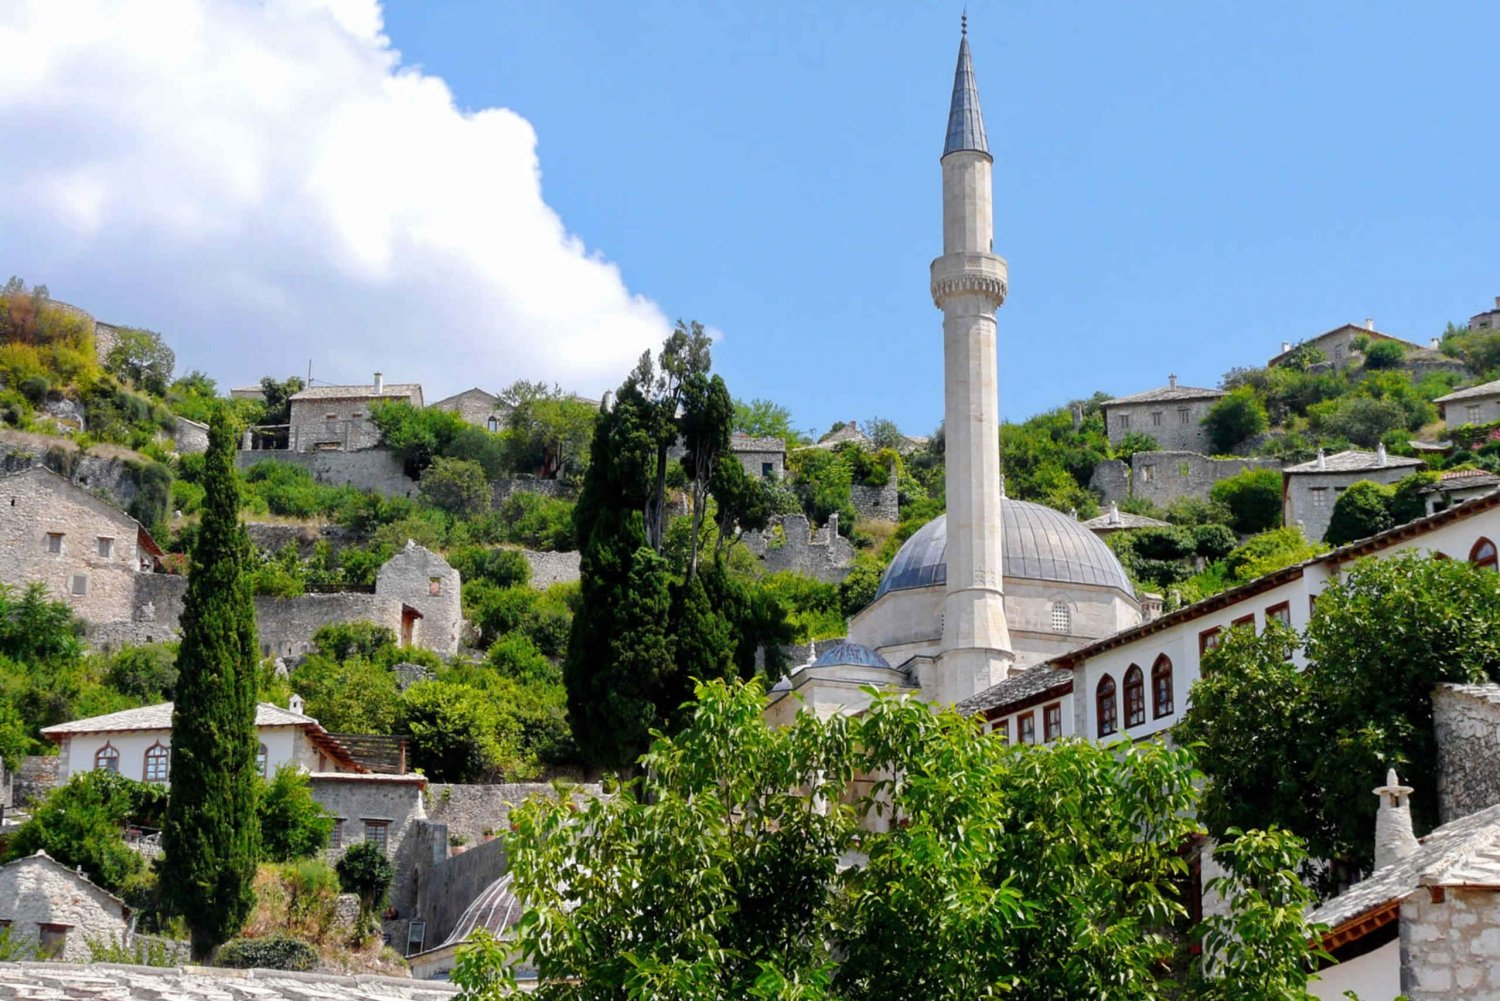 Full-Day Mostar Trip from Dubrovnik